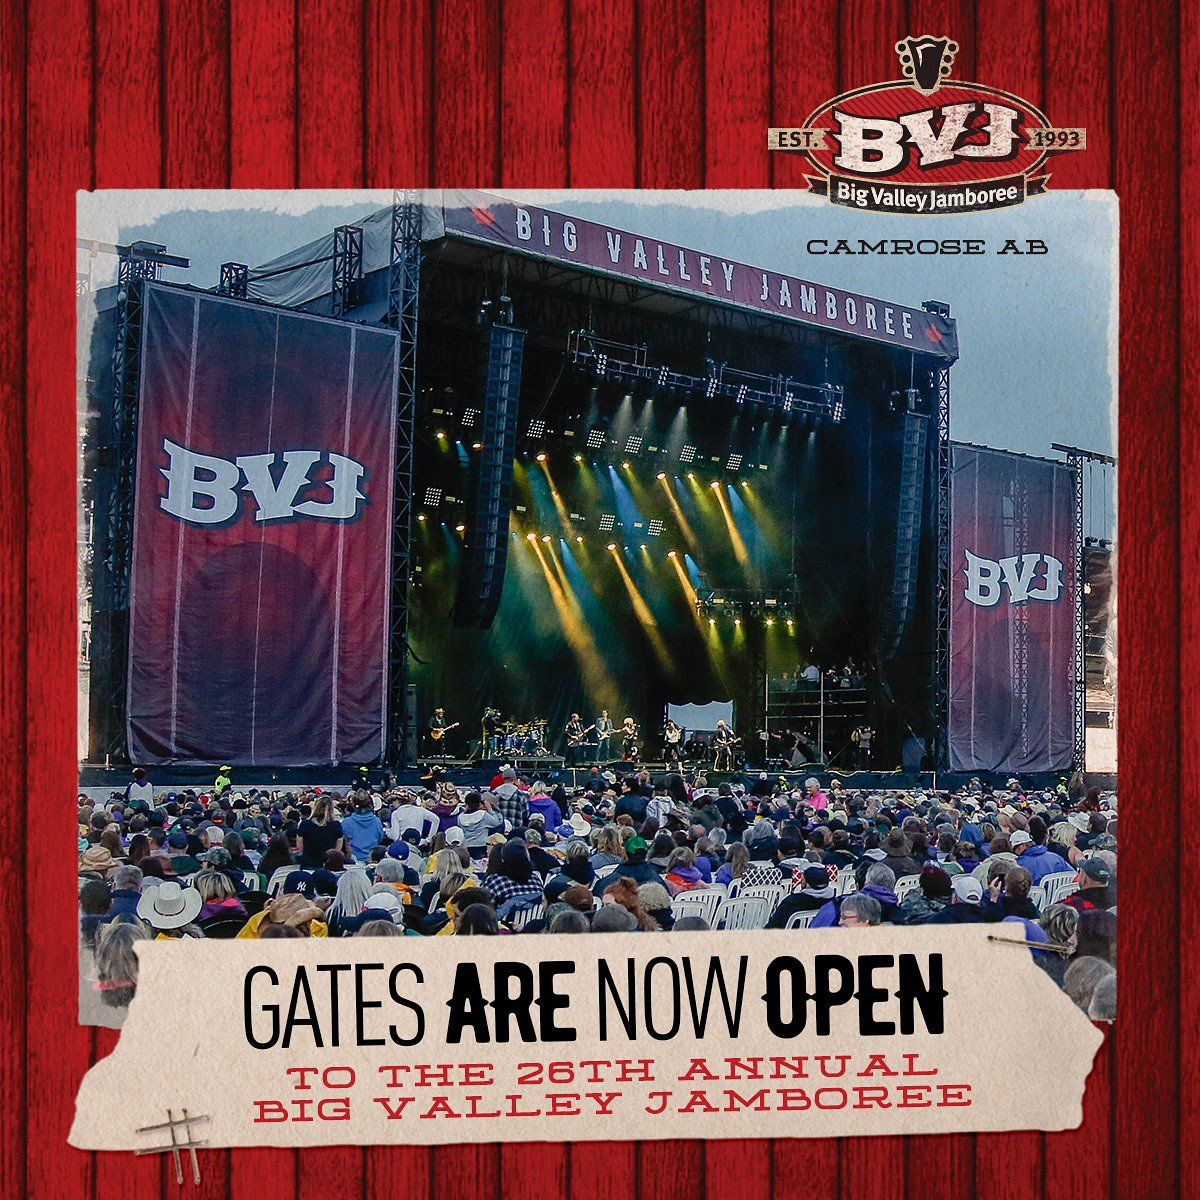 GATES TO BVJ ARE OPEN!